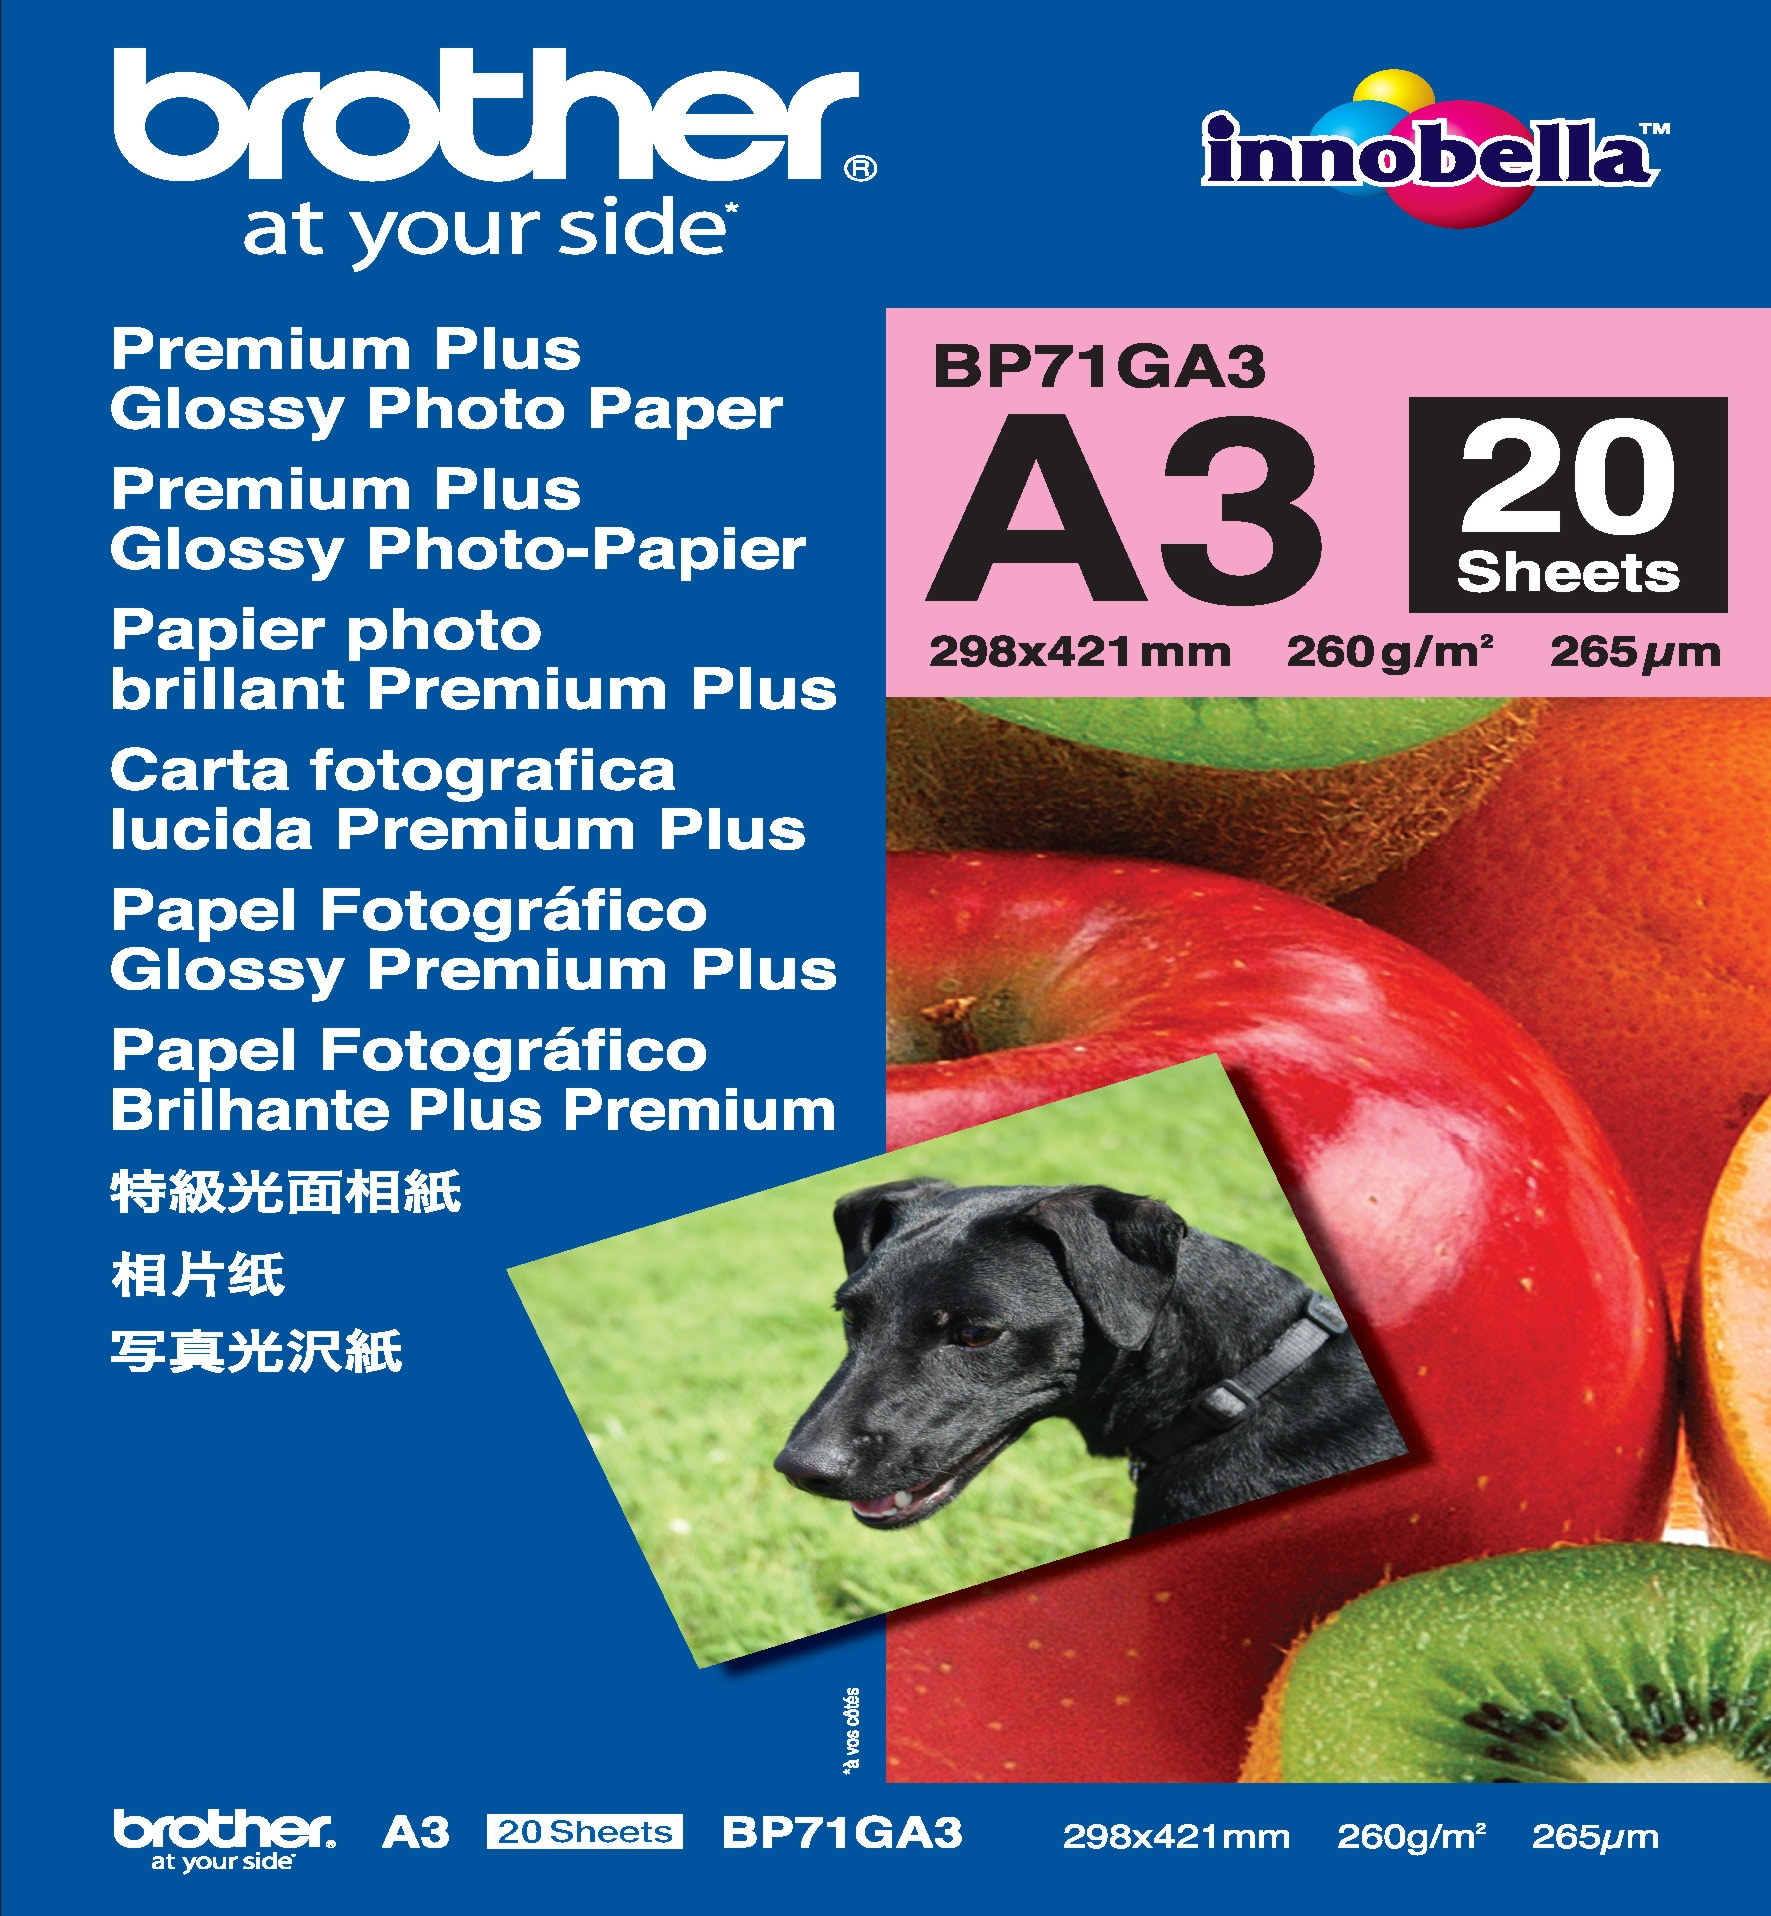 Brother BP-71GA3 Glossy photo inktjet 260g/m2 A3 20 sheets